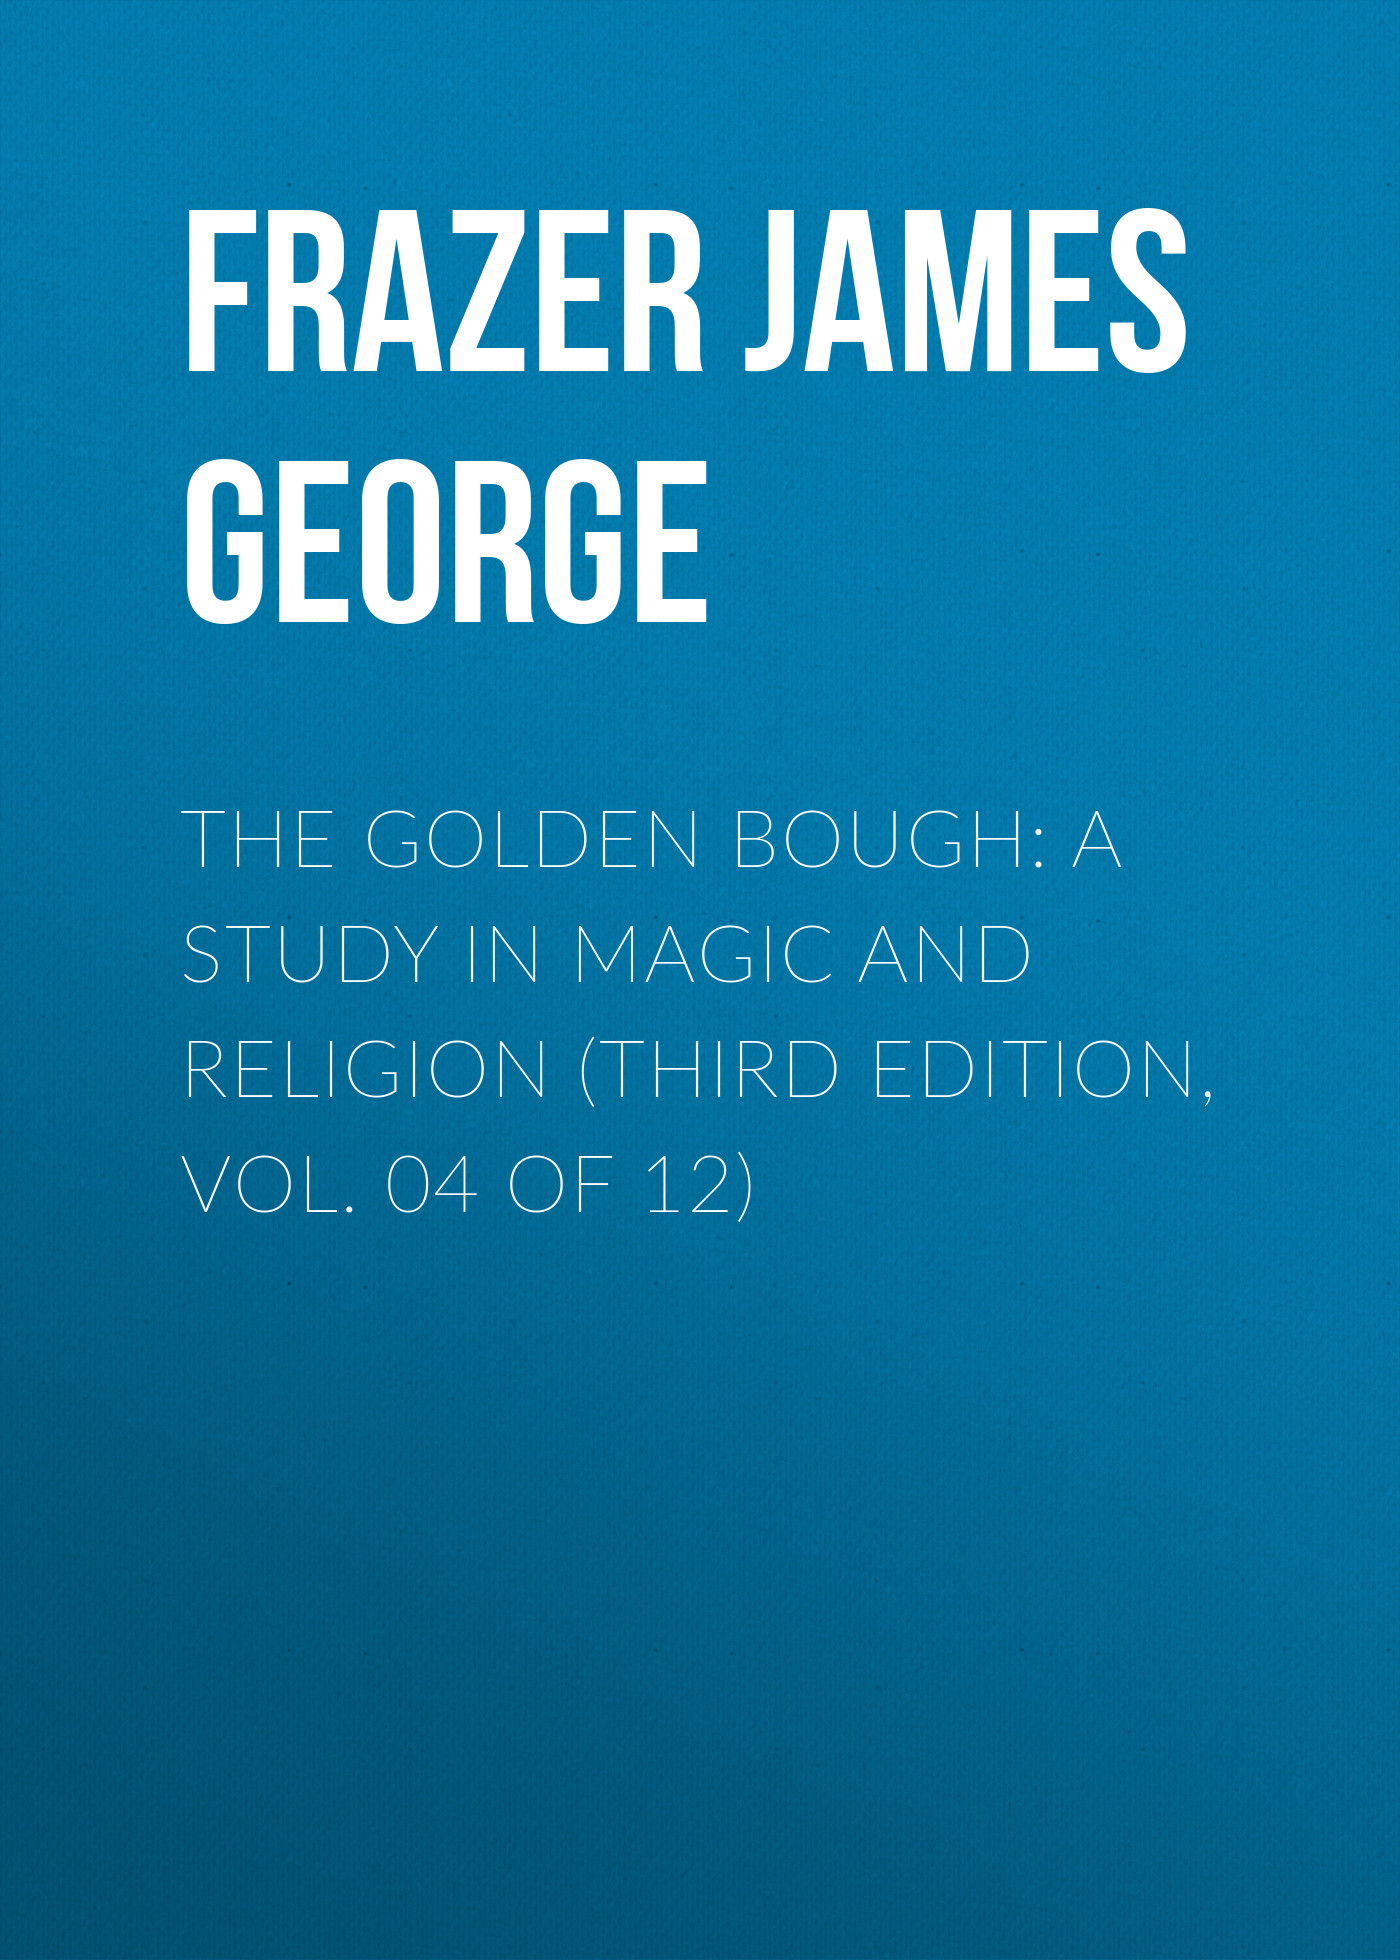 Frazer James George The Golden Bough: A Study in Magic and Religion (Third Edition, Vol. 04 of 12)